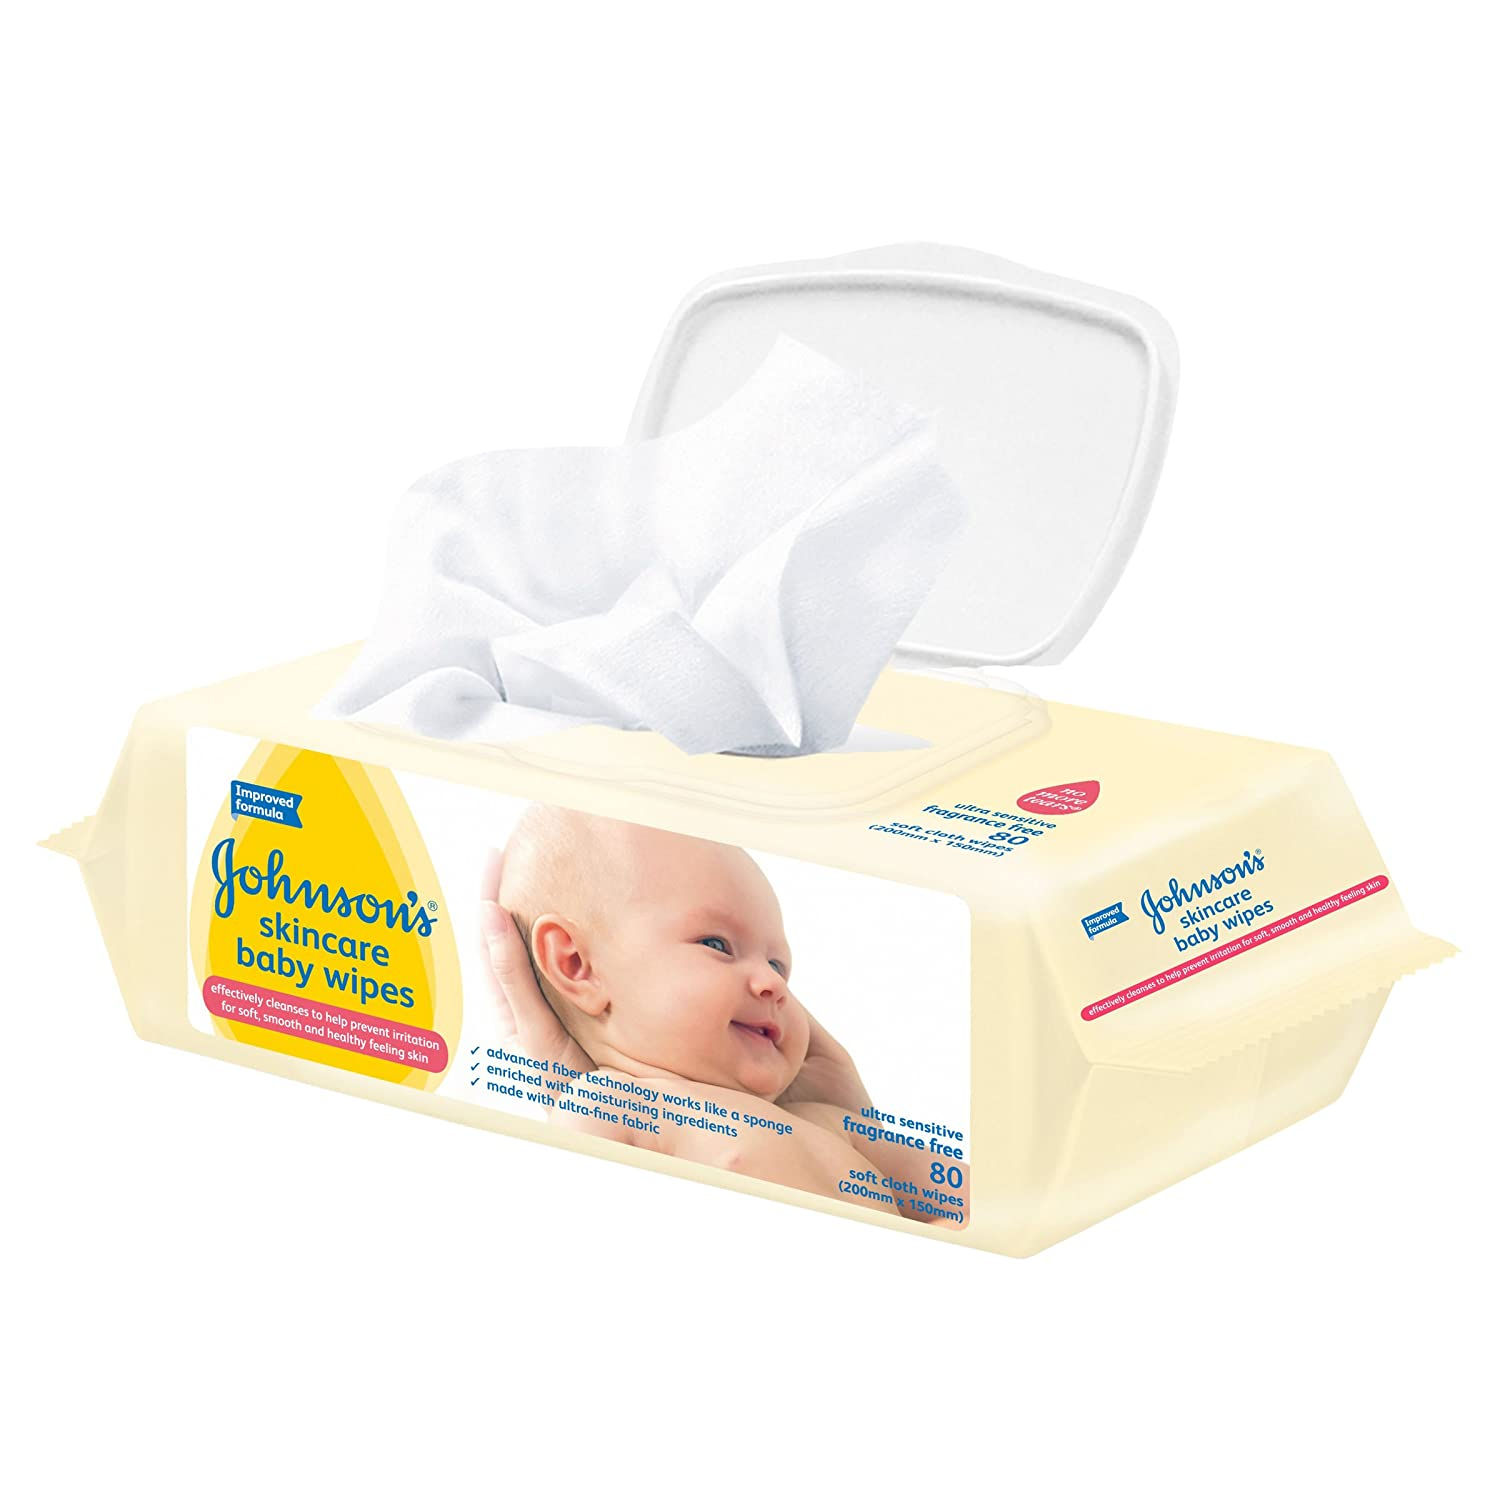 pack Of 6x80 Johnsons Baby Wipes Skincare Fragrance Free Baby Wipes Diapering